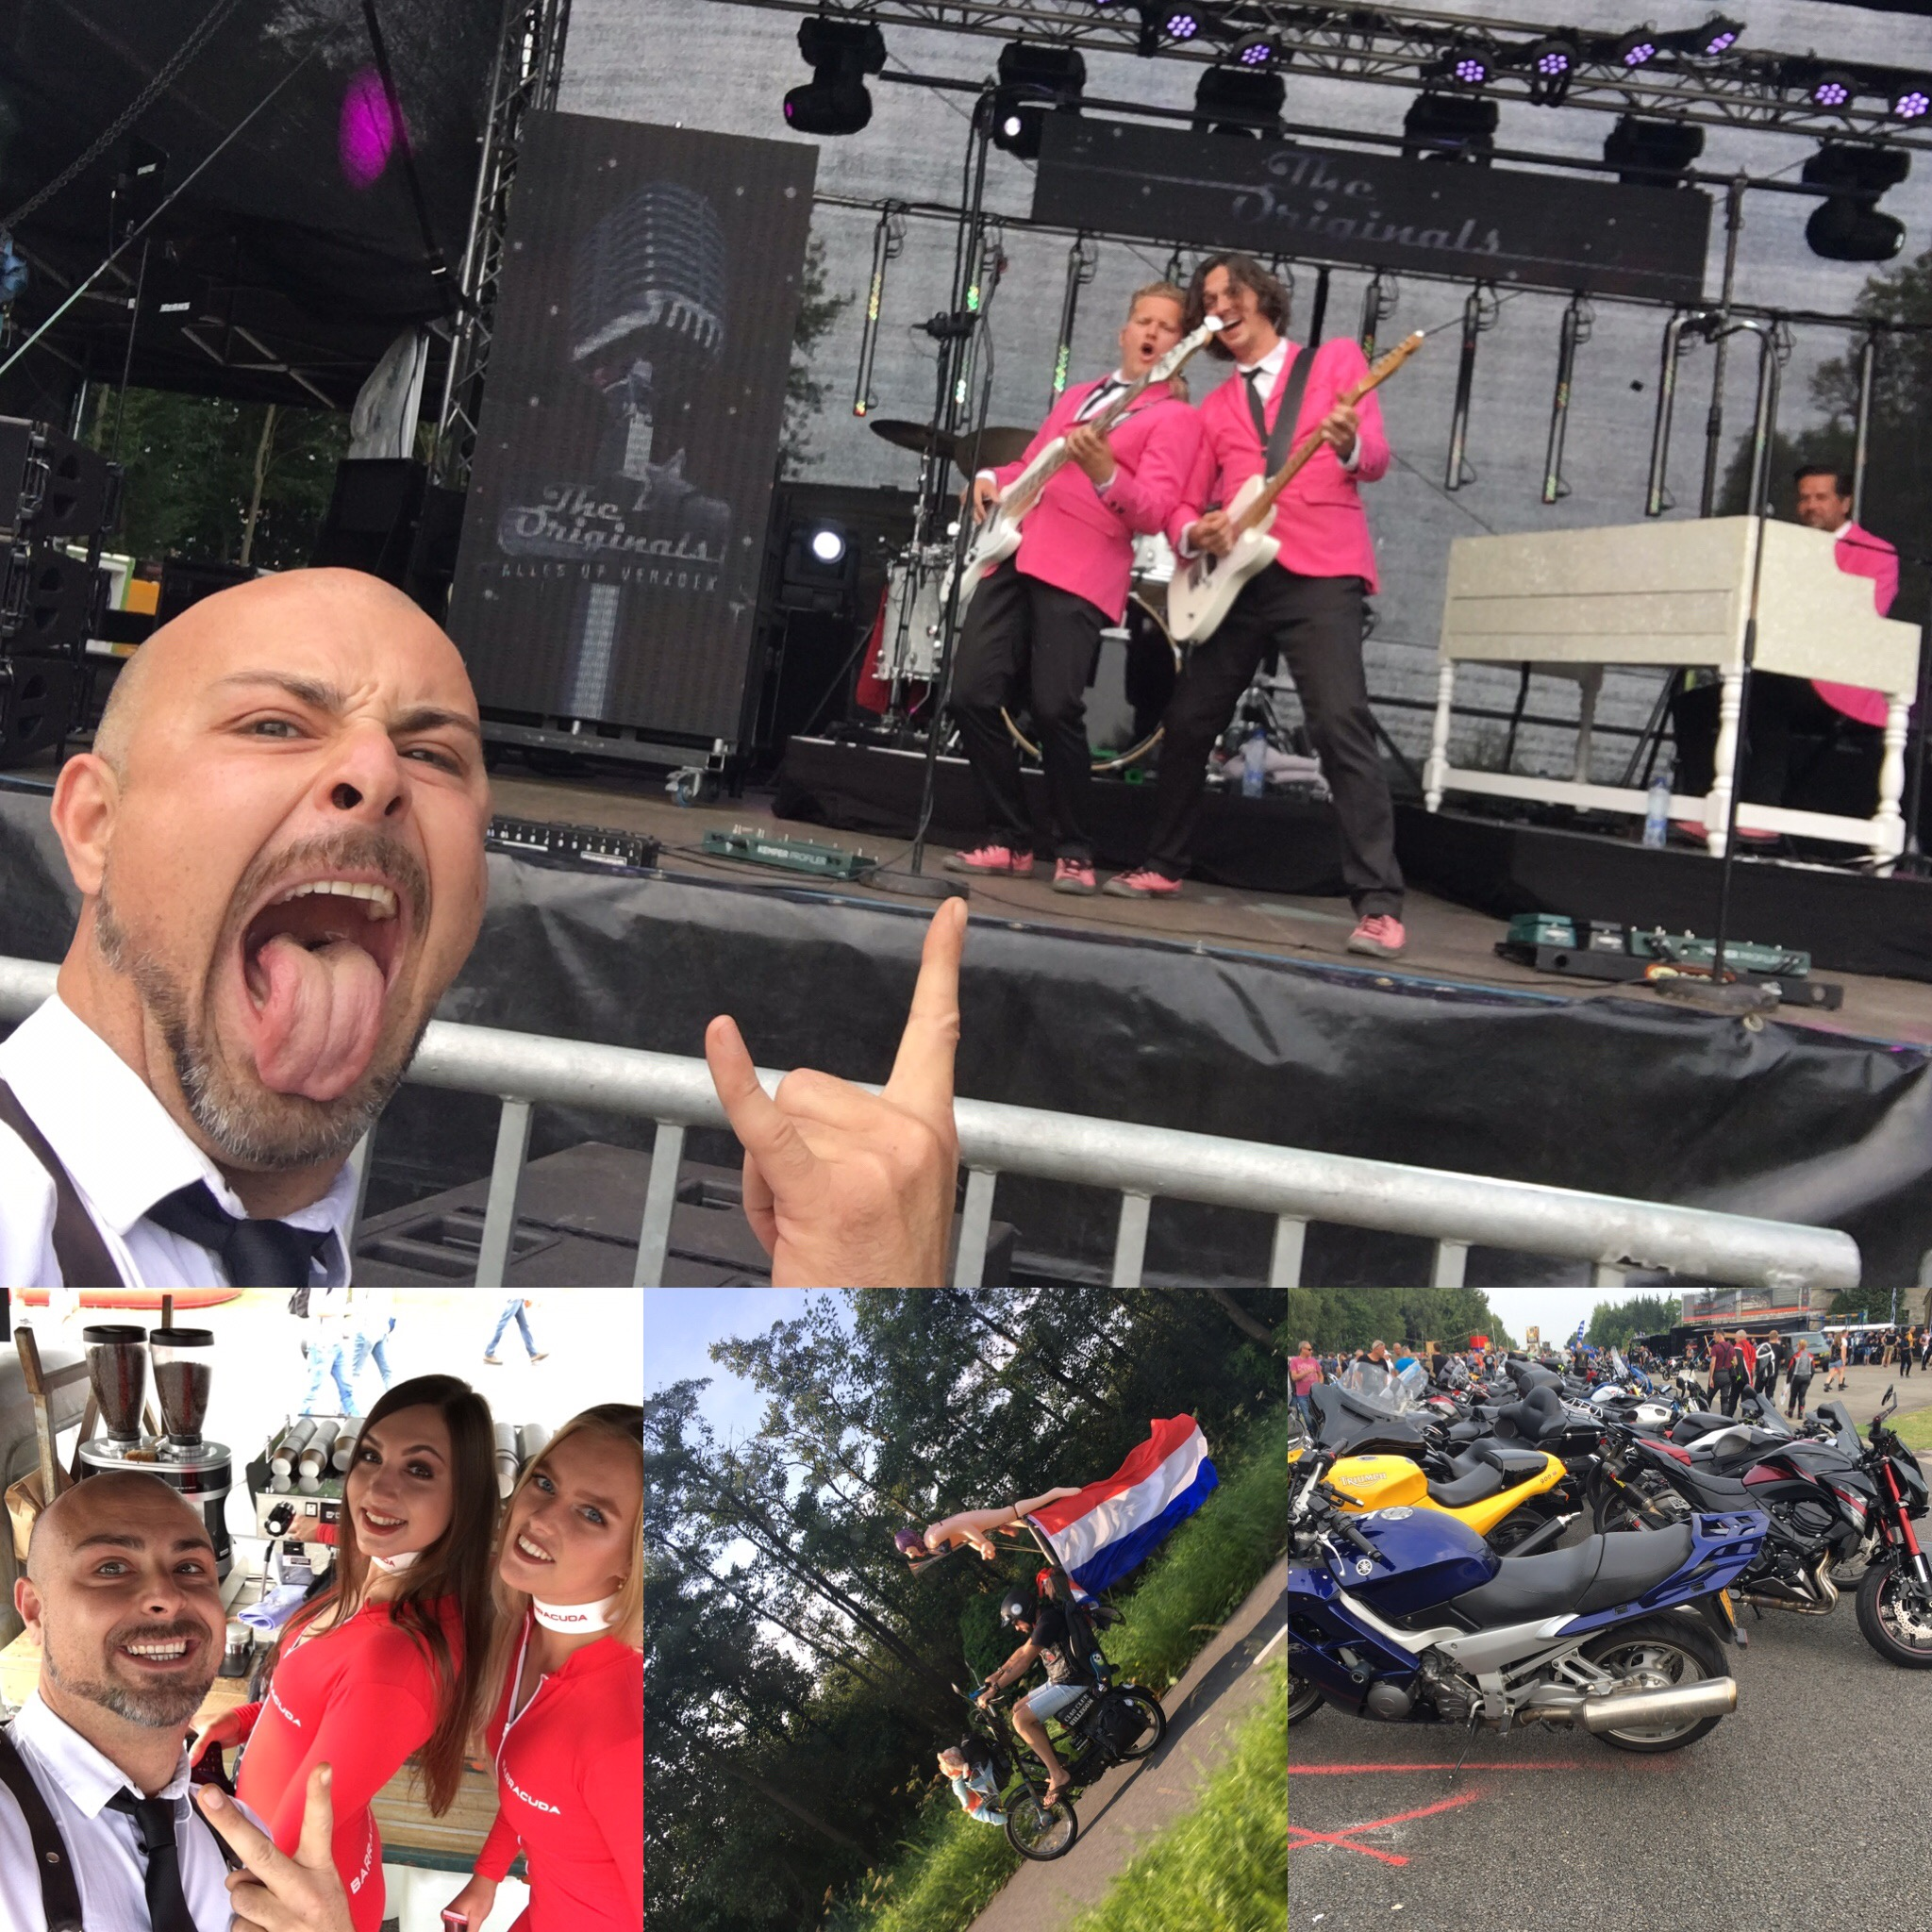 Dutch Motorcycle Festival 2017